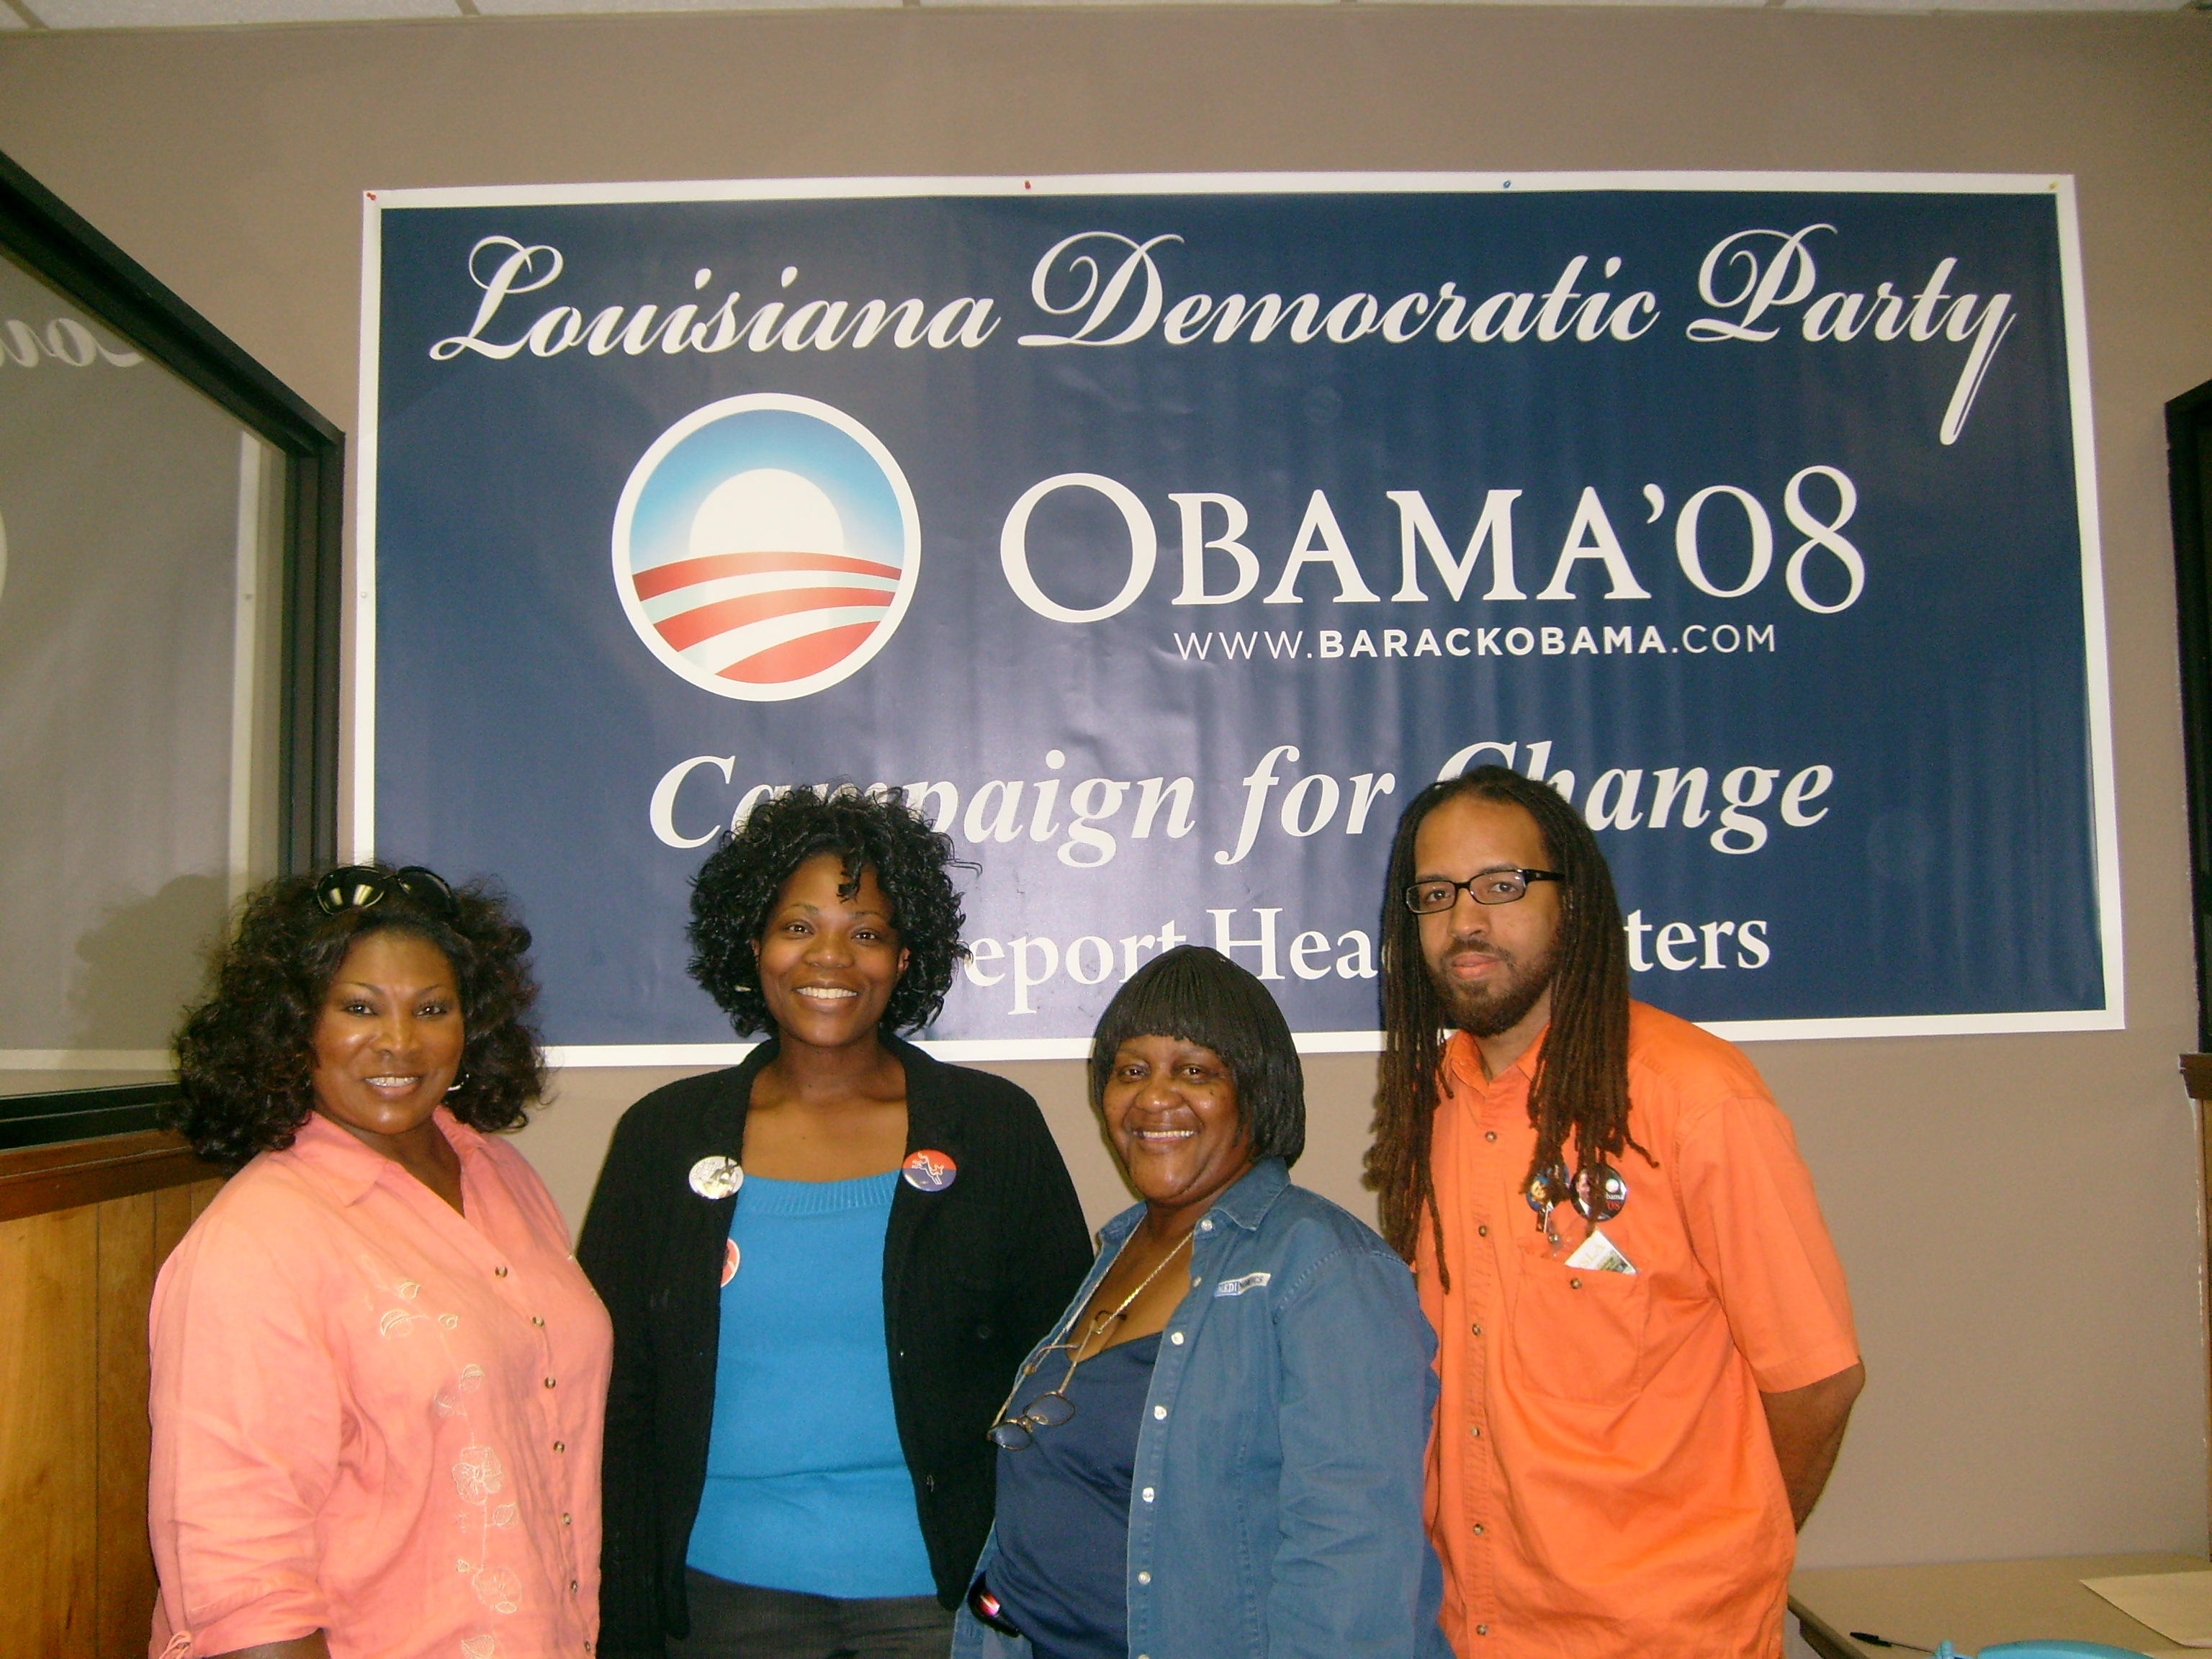 mildred-kellie-gloria-and-kaylon-for-obama